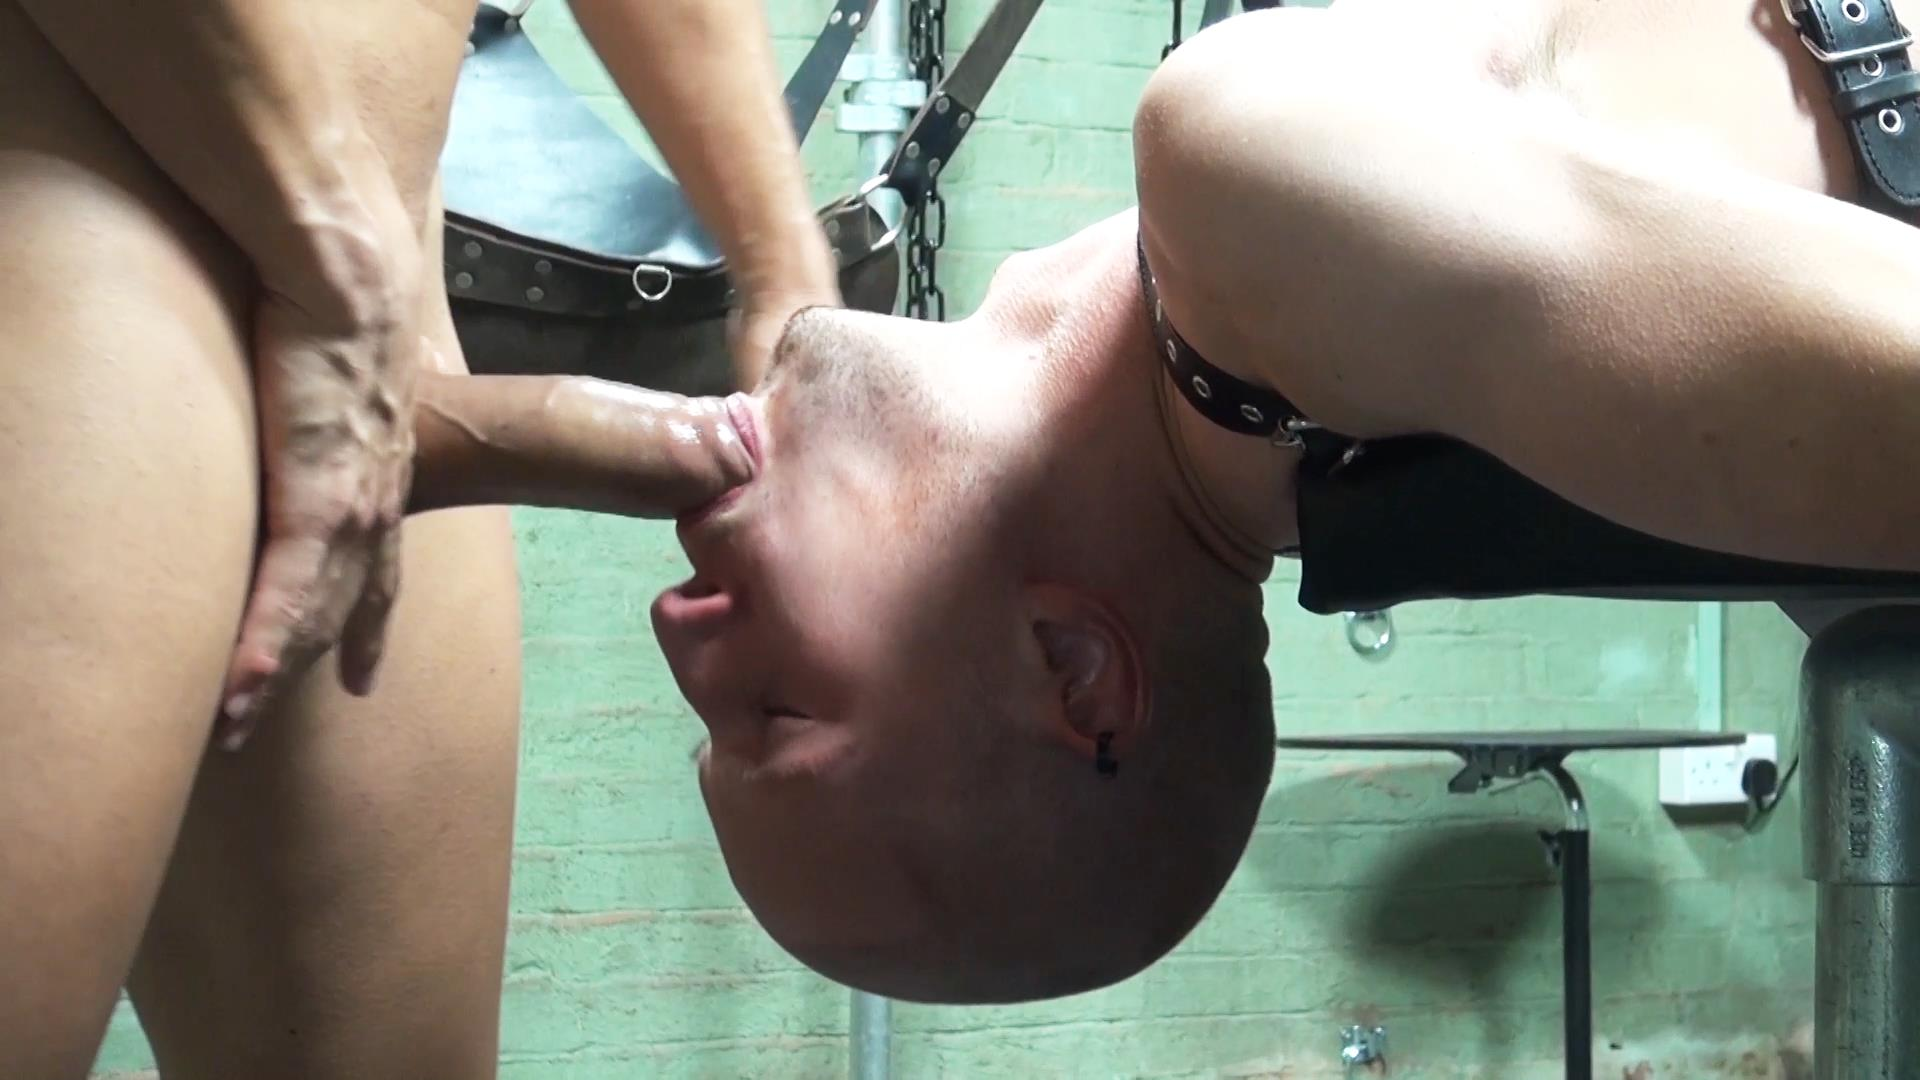 Dark Alley XT Anakonda and Jason Domino Bareback Big Uncut Cock Amateur Gay Porn 3 Breeding A Slave Hole With A Big Uncut Cock At The Bathhouse